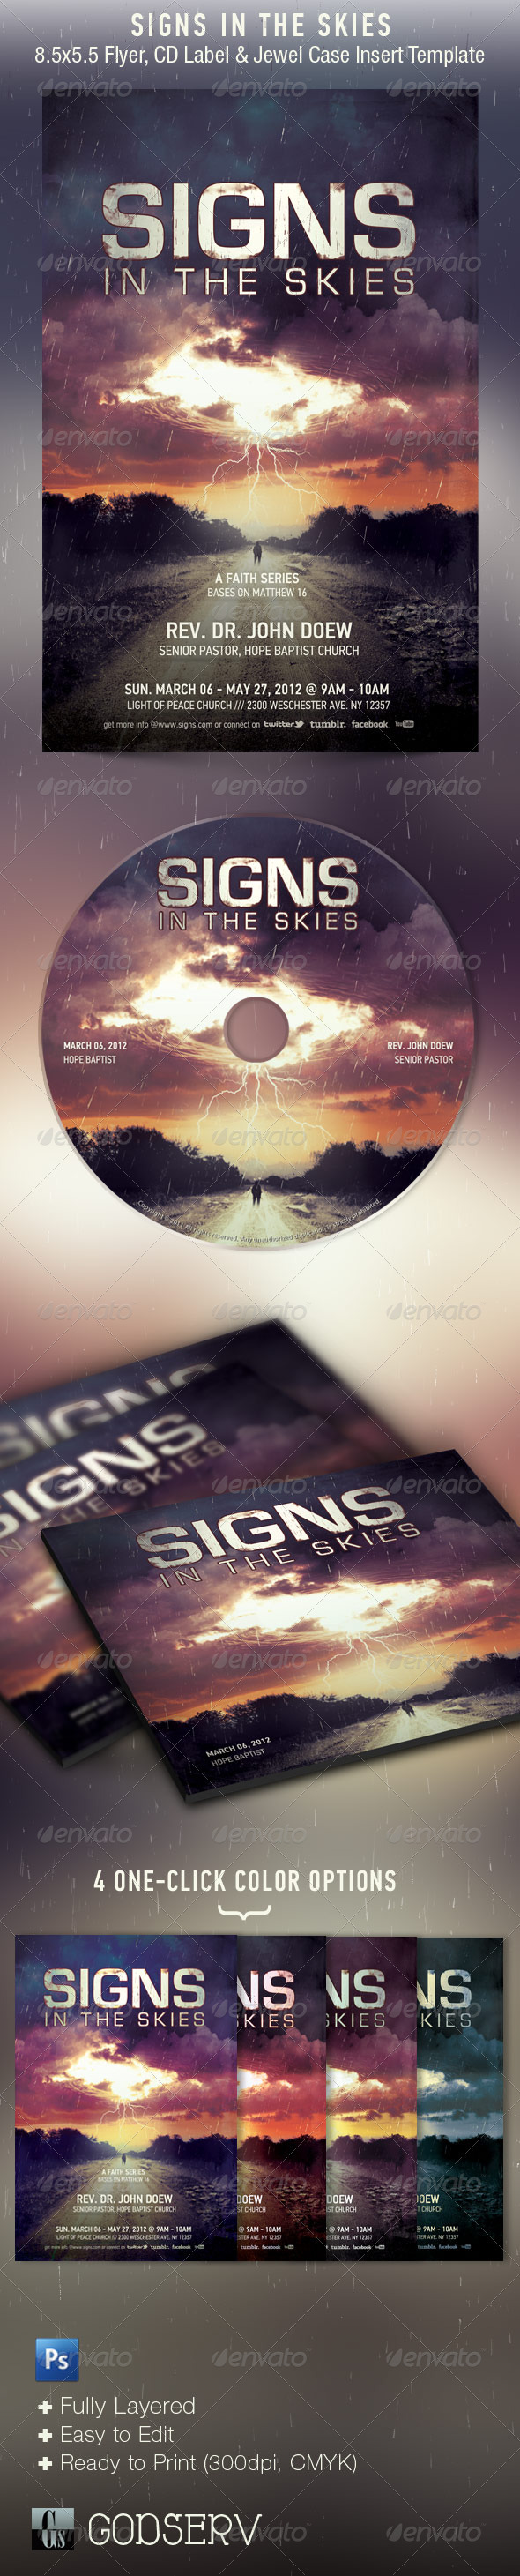 GraphicRiver Signs In The Skies Church Flyer and CD Template 1840317